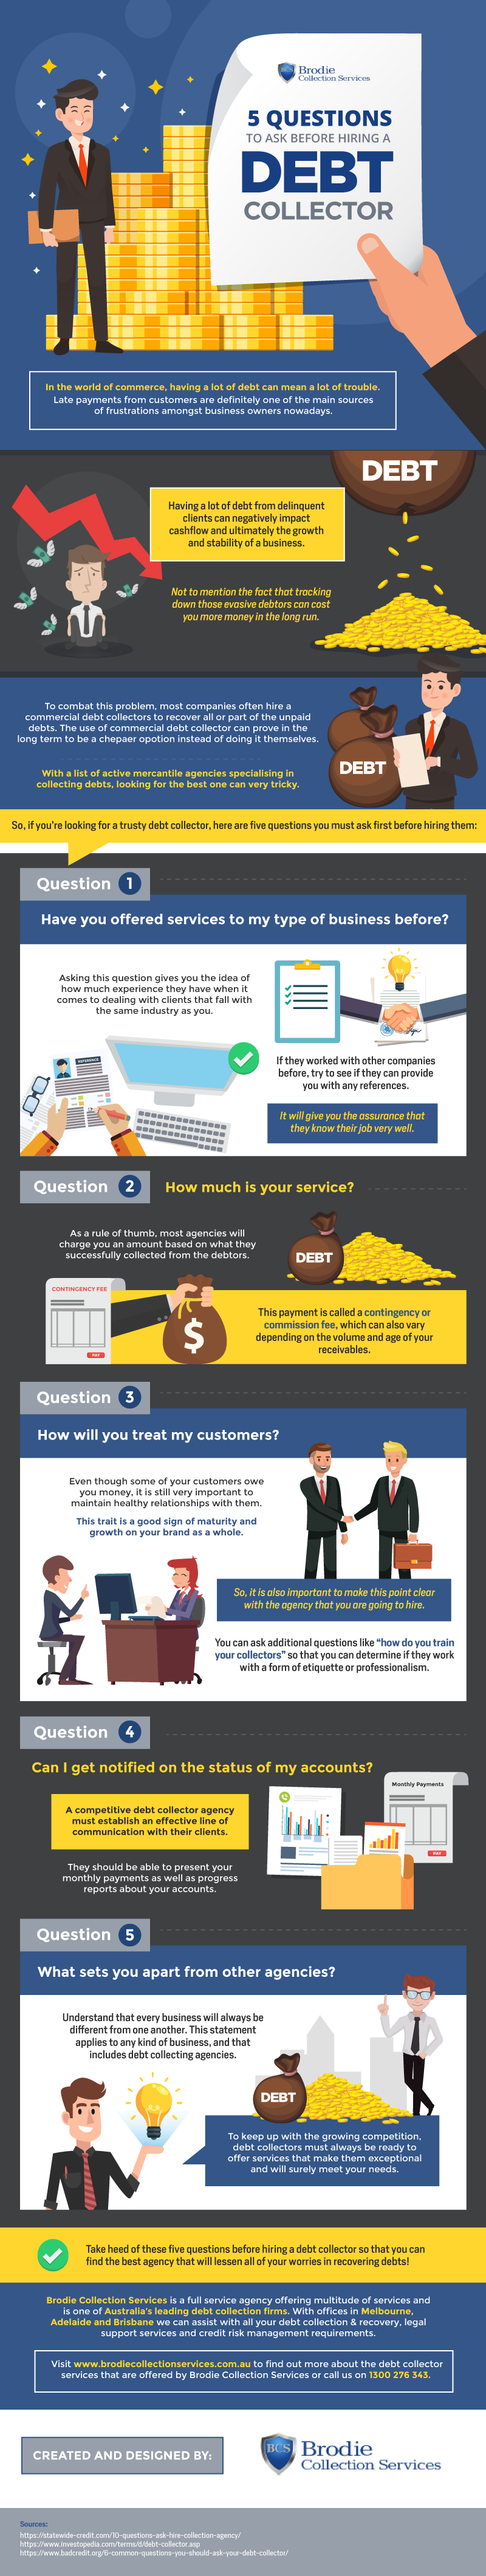 5 Questions to Ask Before Hiring a Debt Collector - Infographic